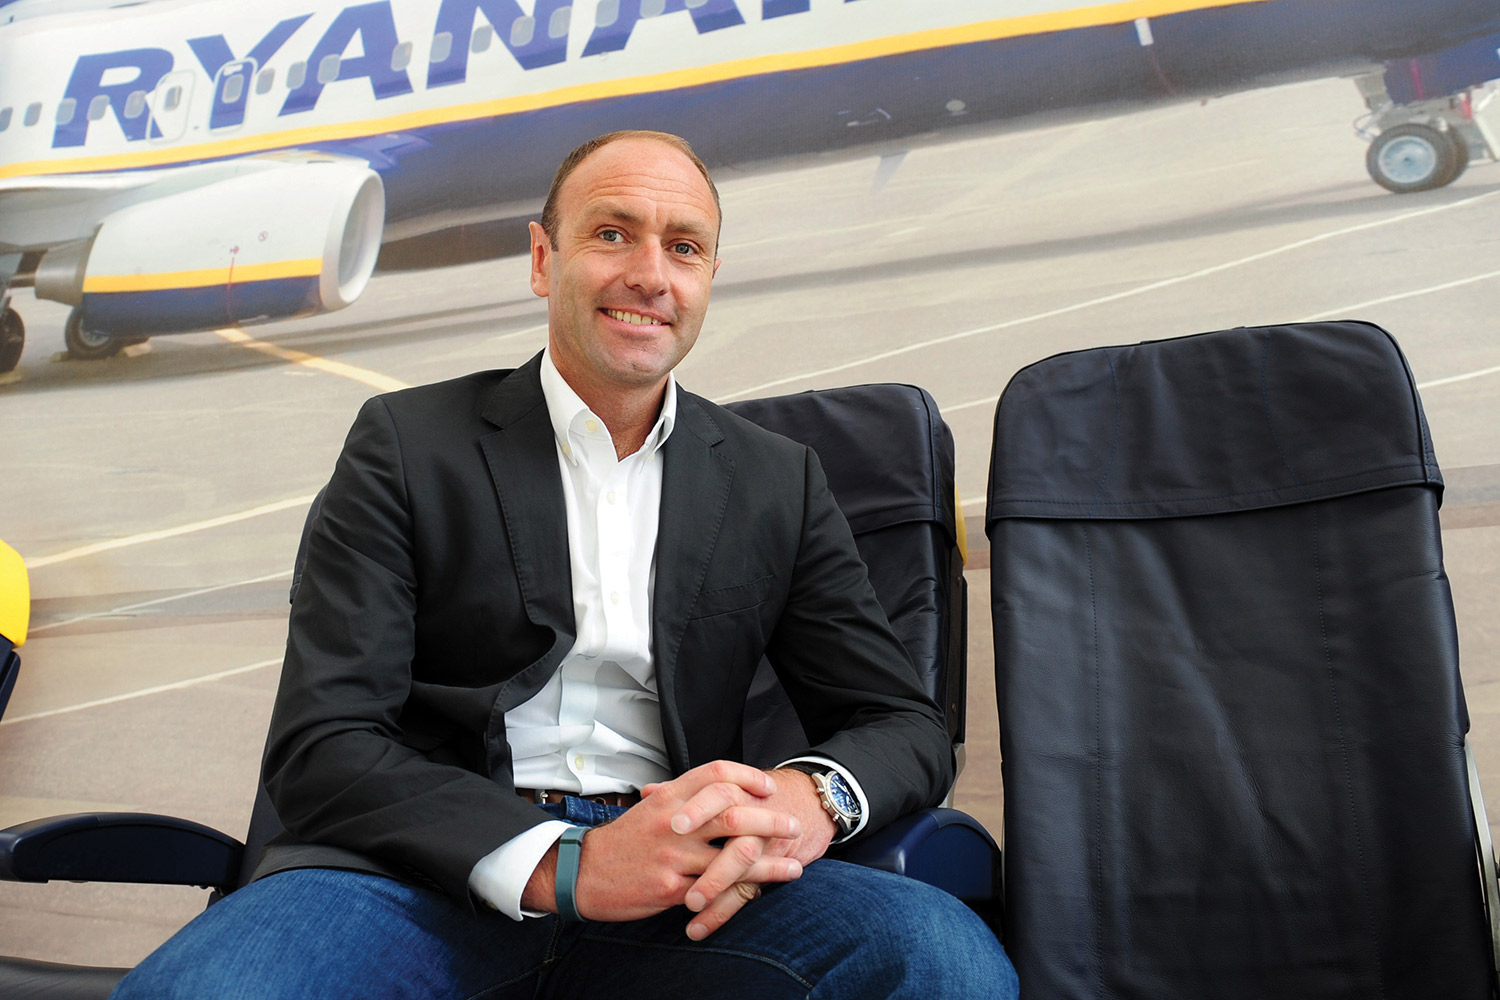 Kenny Jacobs (Ryanair)